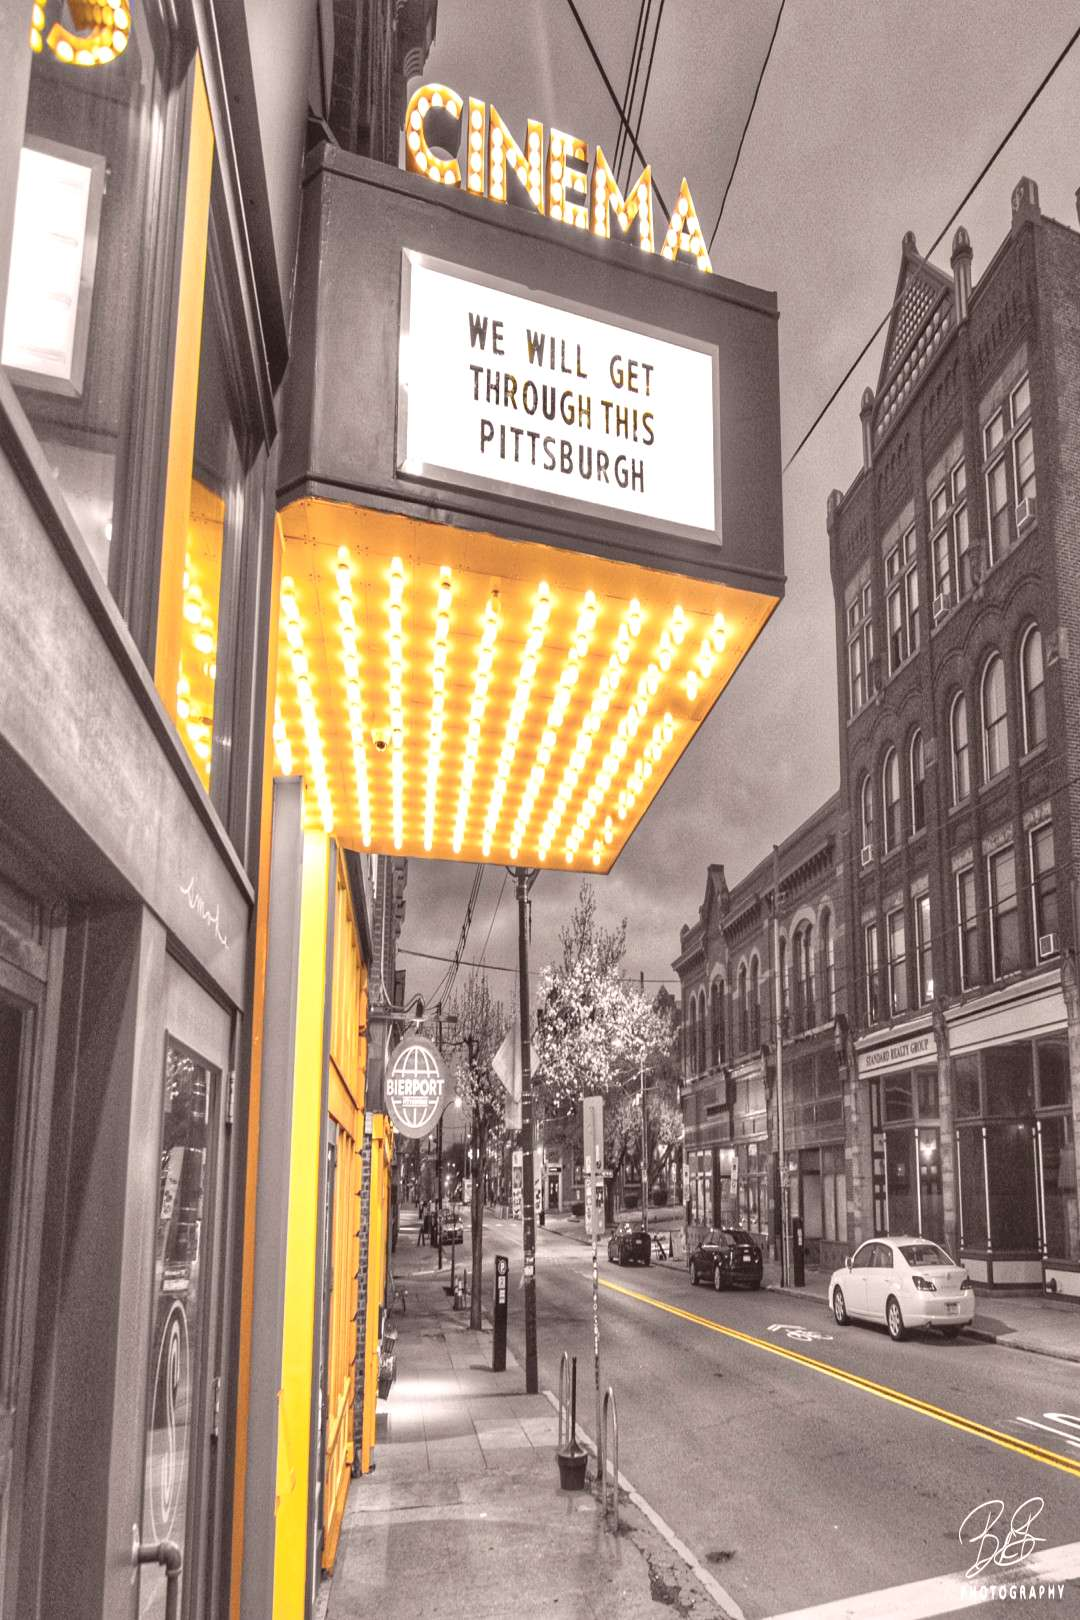 Great shot in Lawrenceville by Brad. Sent with the Pittsburgh Beautiful app. Thx!